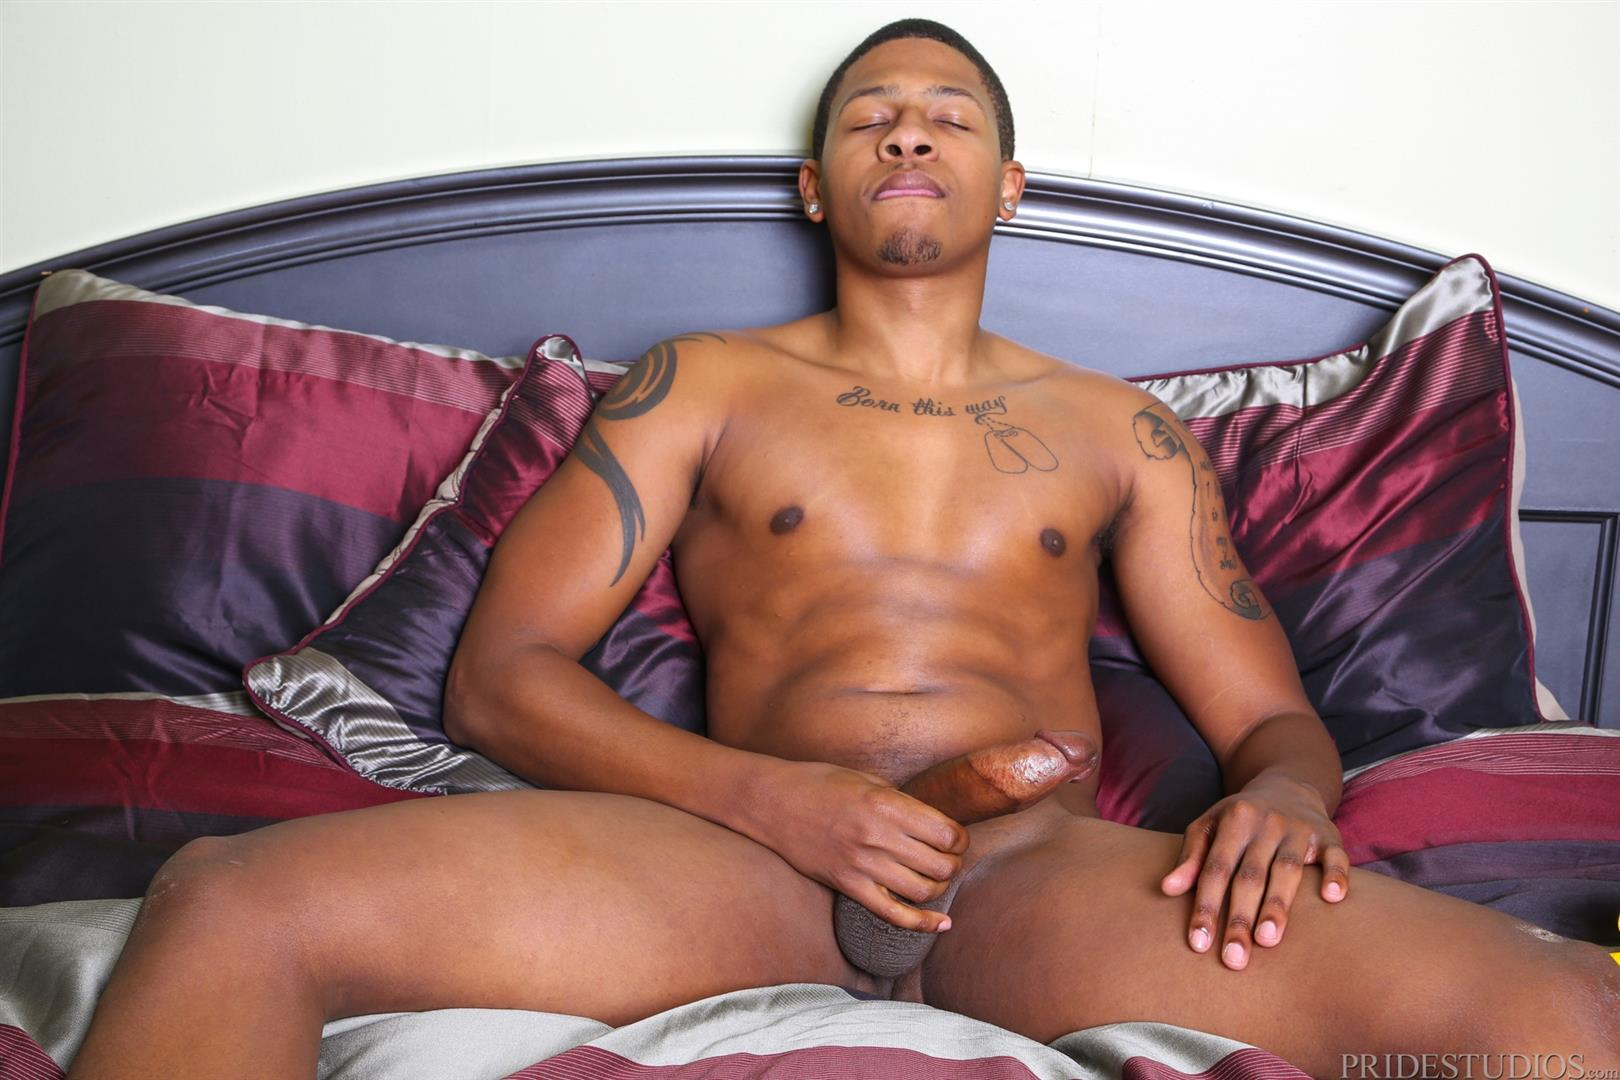 Extra Big Dicks Dontae Morningwood Thug Jerking Off Big Black Dick Amateur Gay Porn 14 Young Black Guy With A Thick Ass Jerks His Big Black Cock